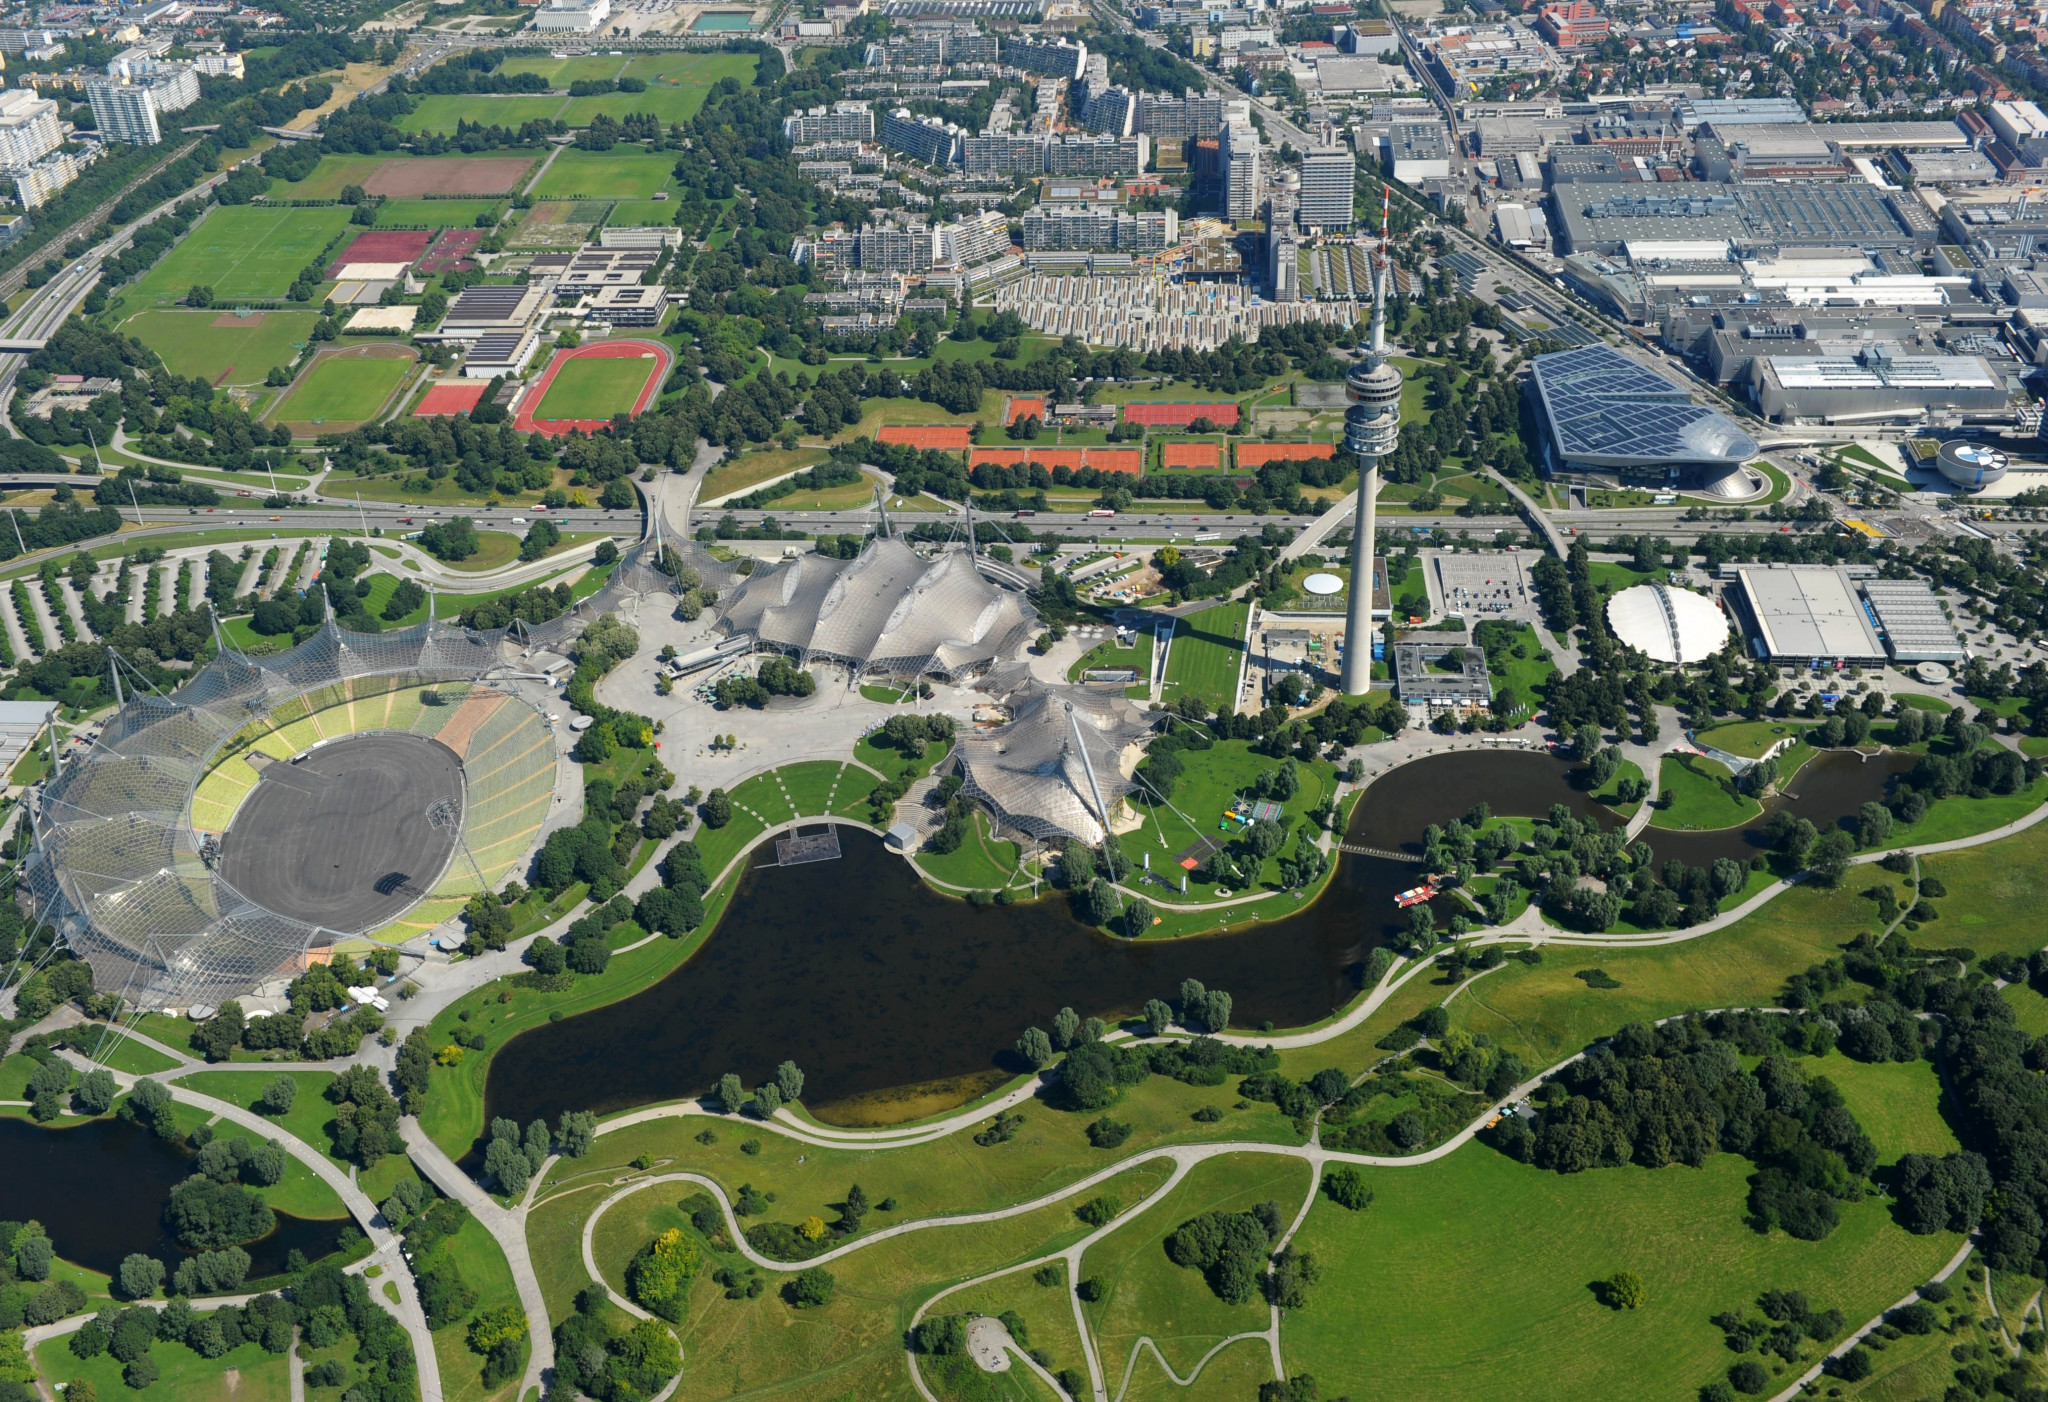 Munich's Olympiapark could become a UNESCO world heritage site ©Getty Images